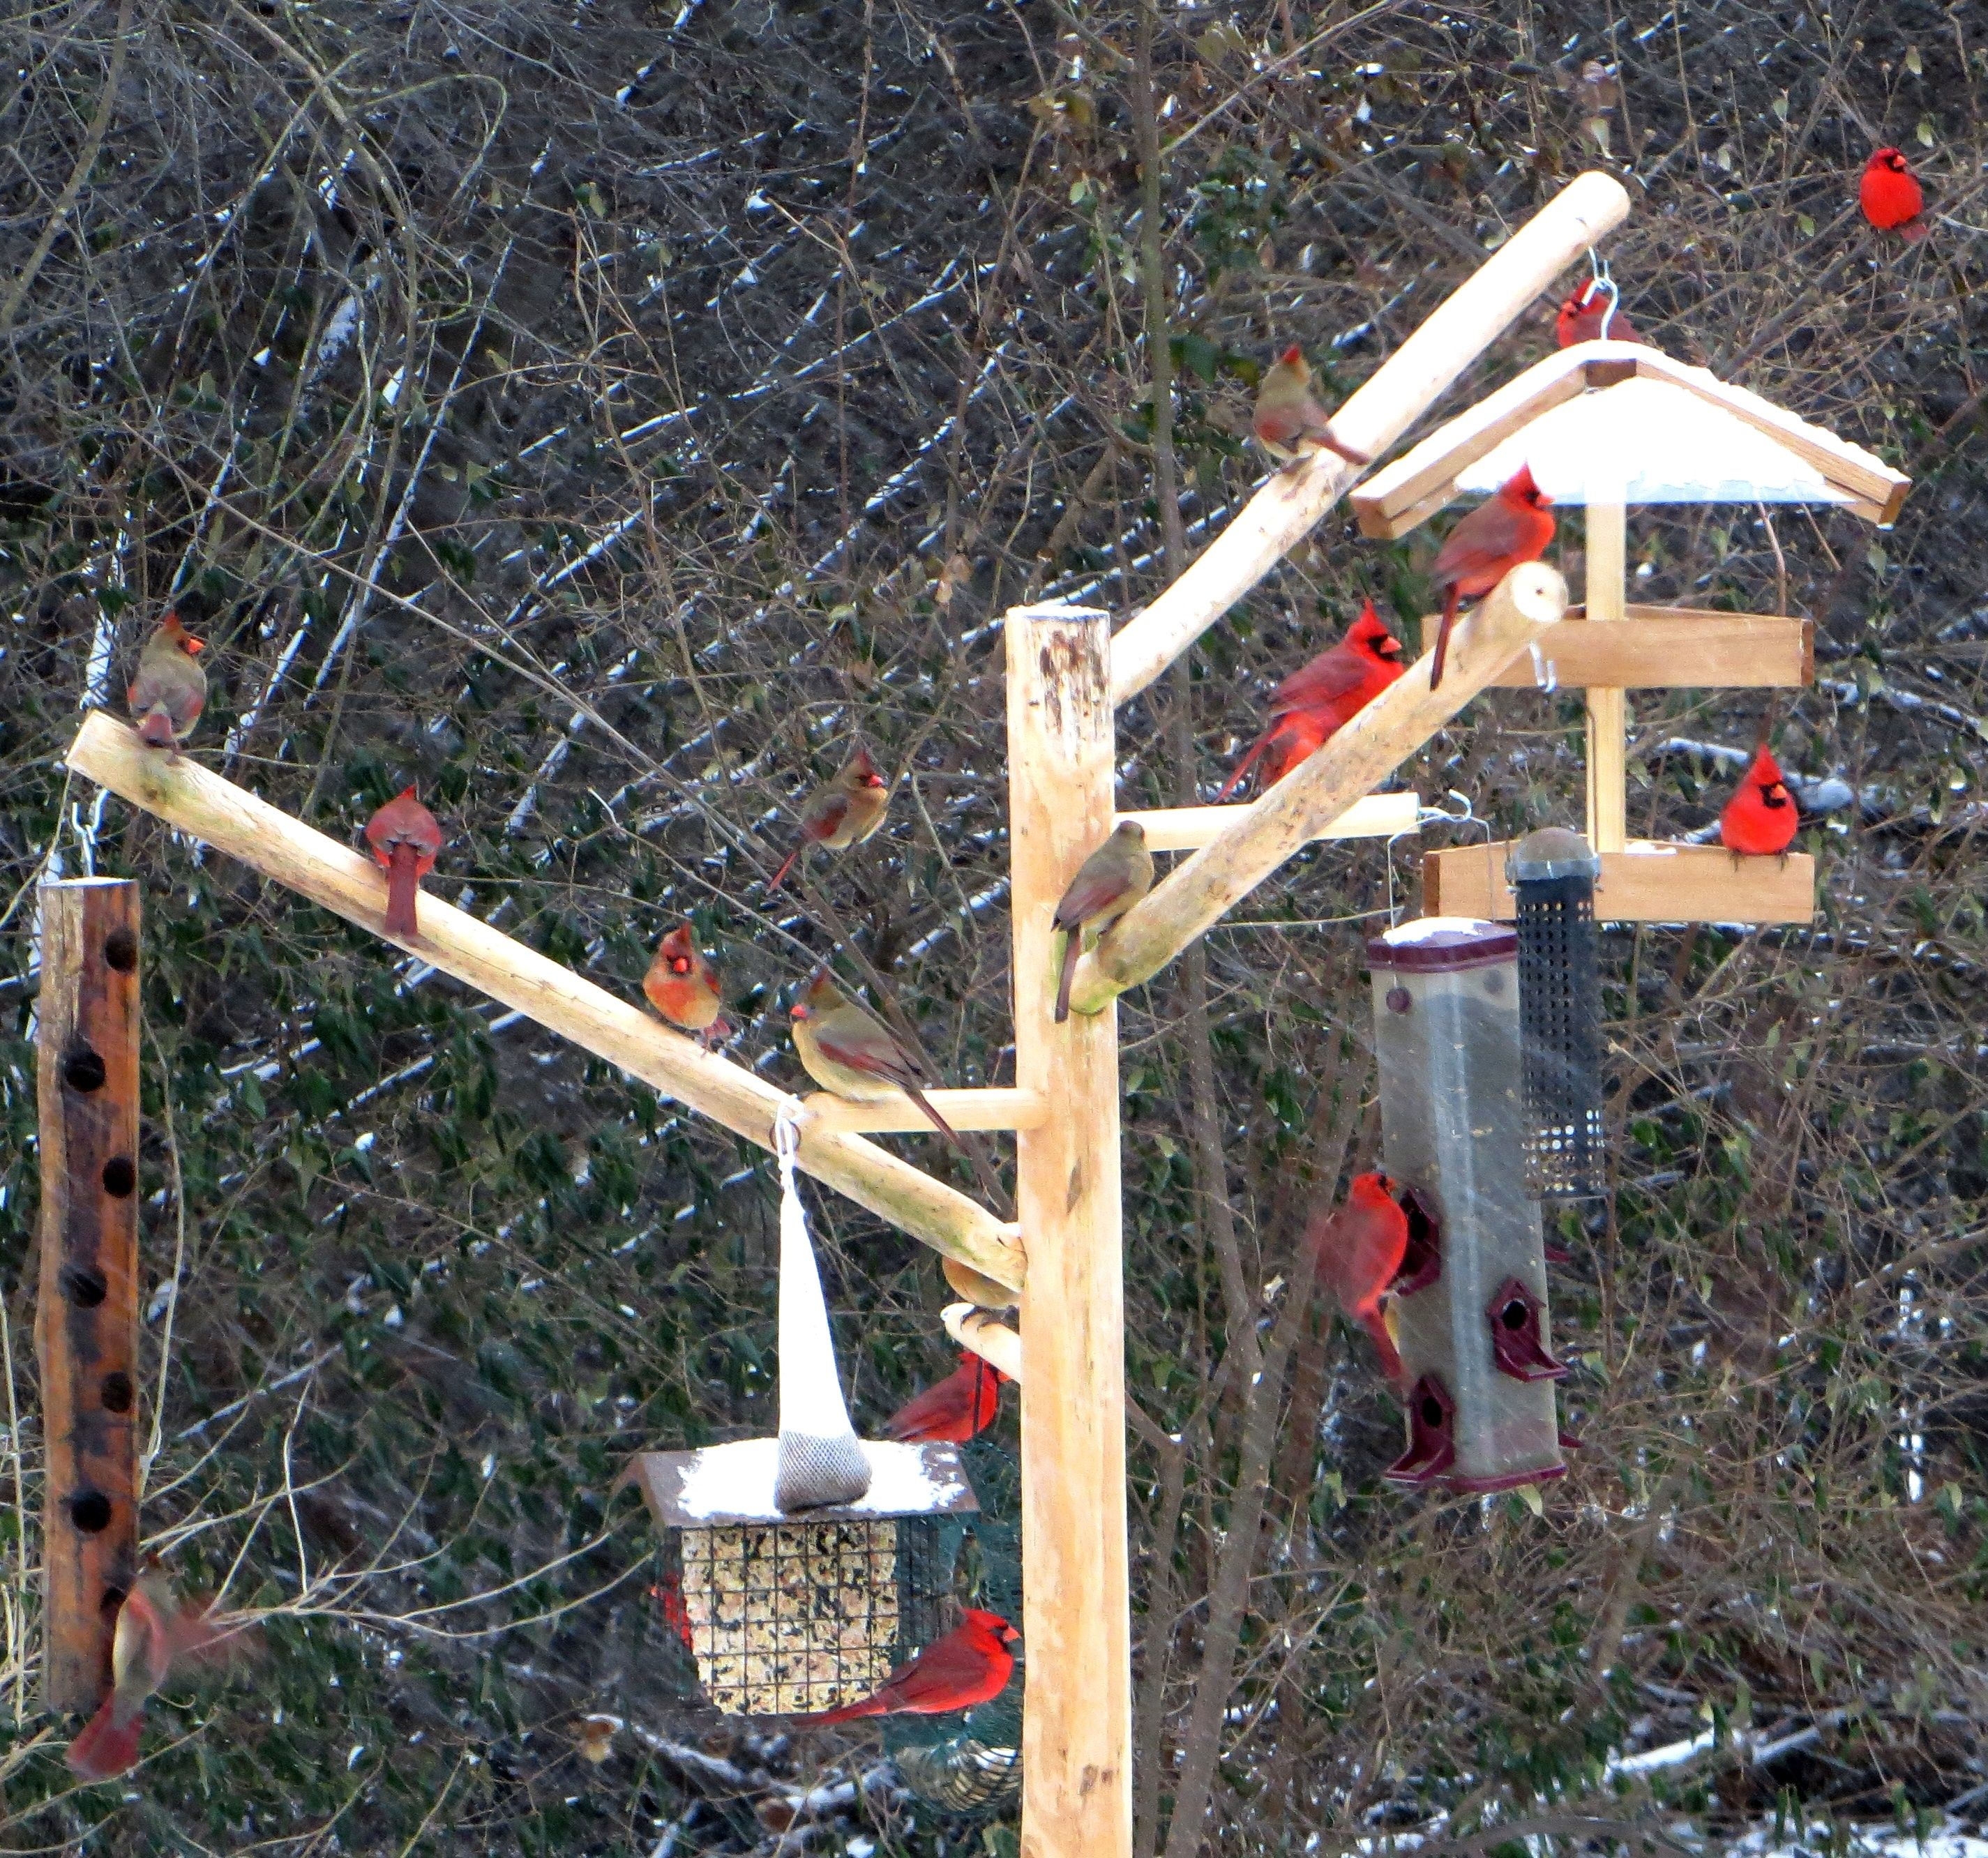 mounted a time pole feeders vi zen night feeder birdfeeder at the bird visitor